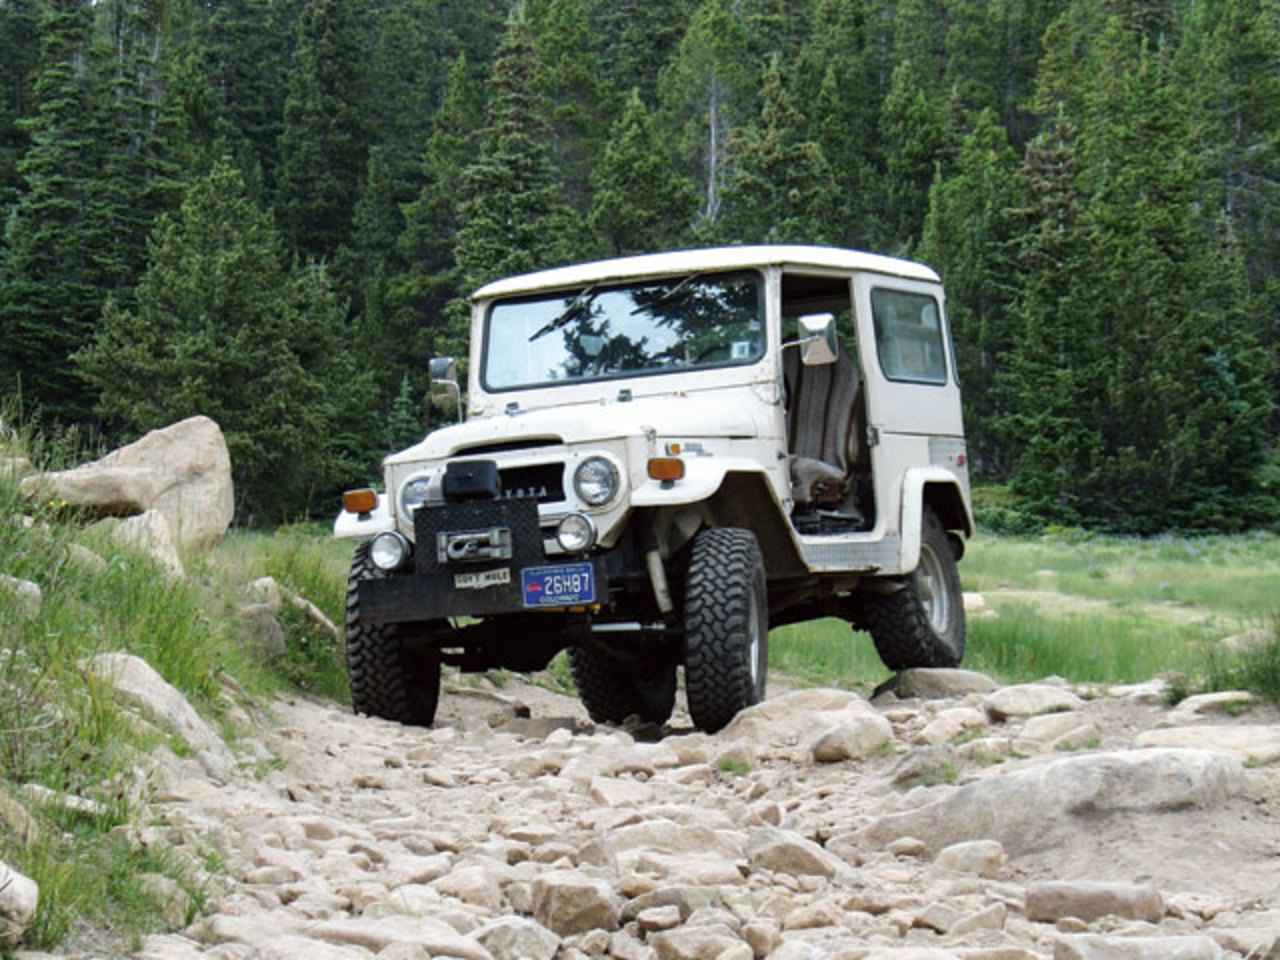 1971 Toyota Land Cruiser Fj40 Front View Mountains